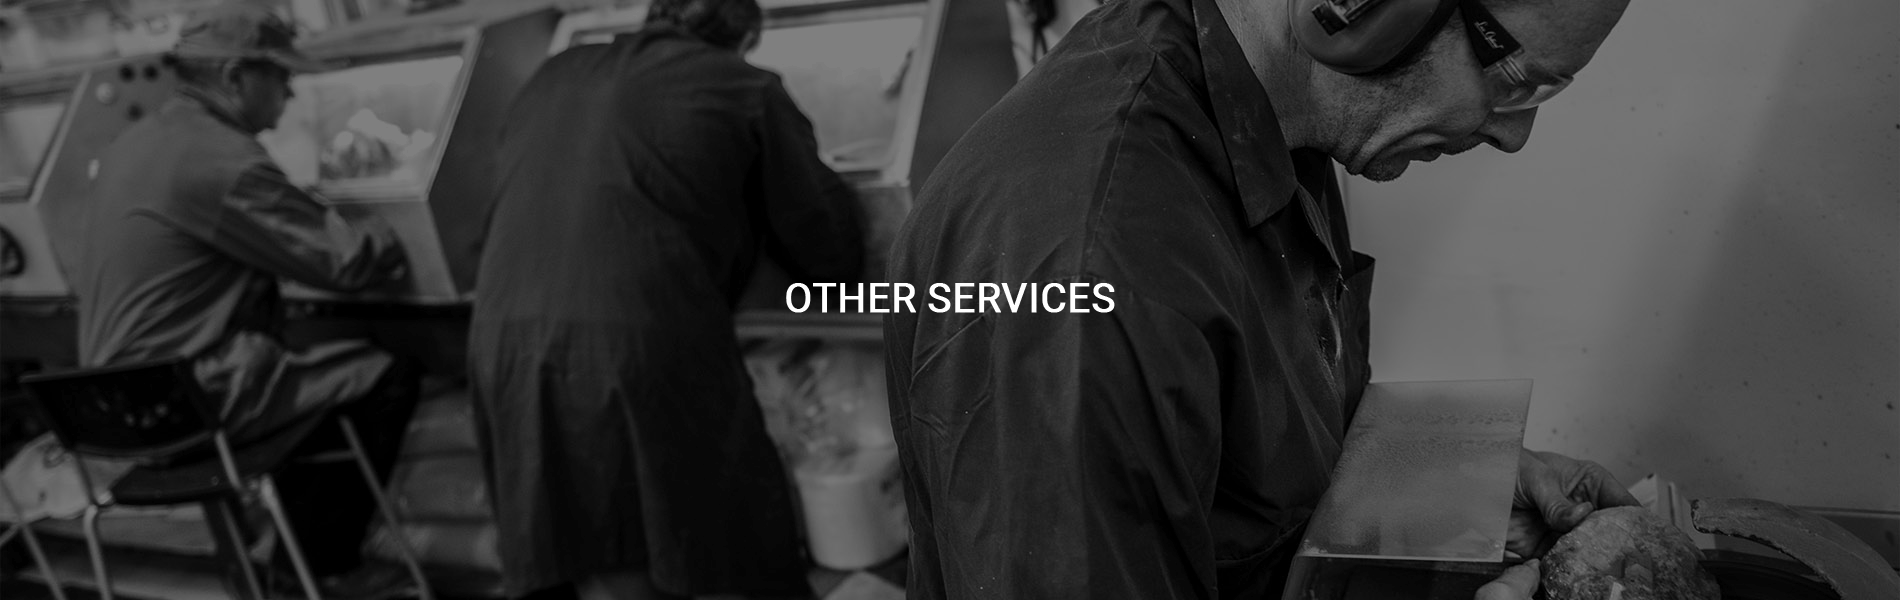 otherservices